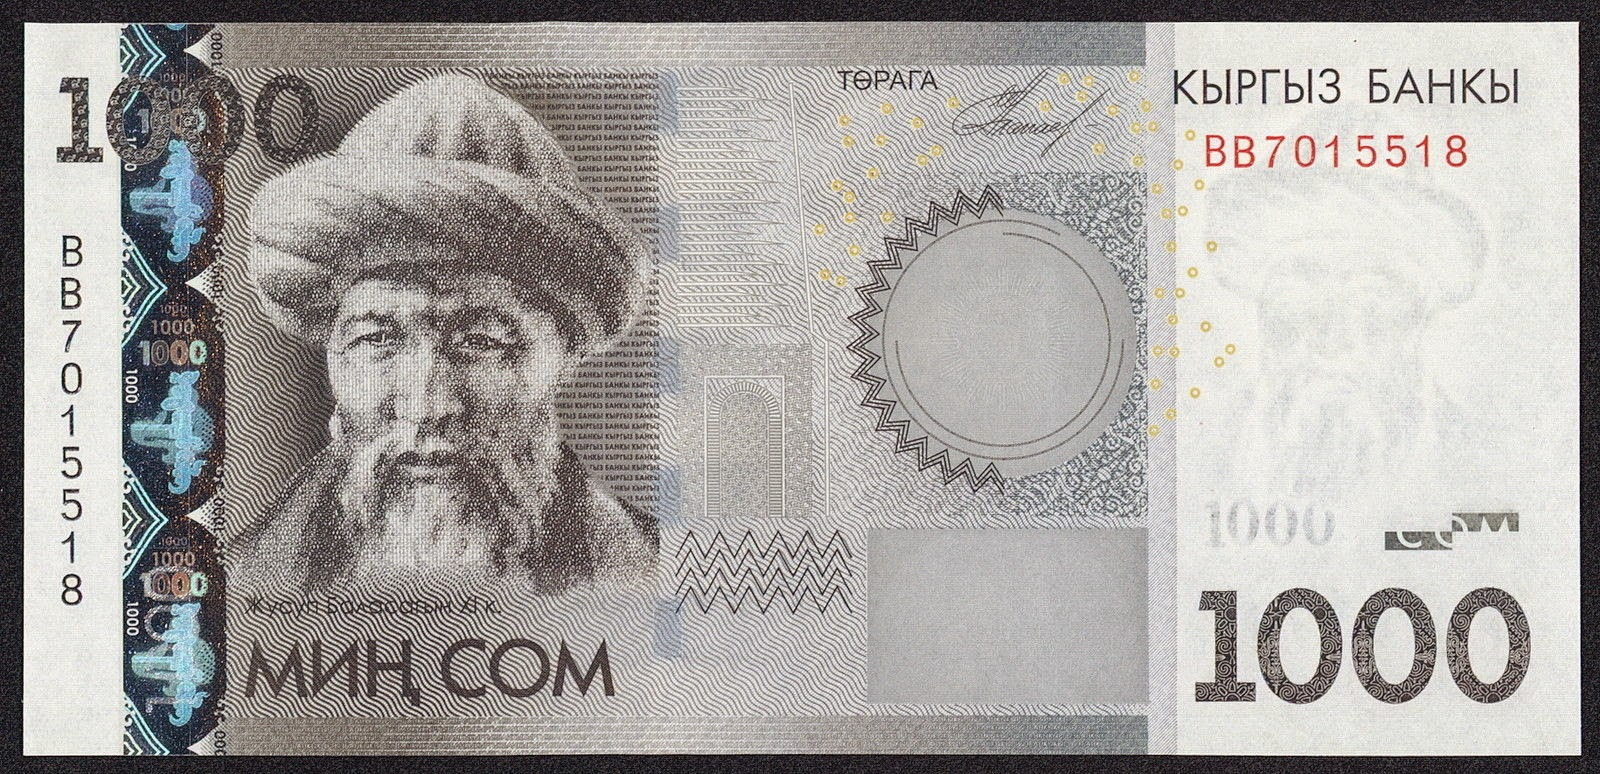 Kyrgyzstan Banknotes 1000 Som note